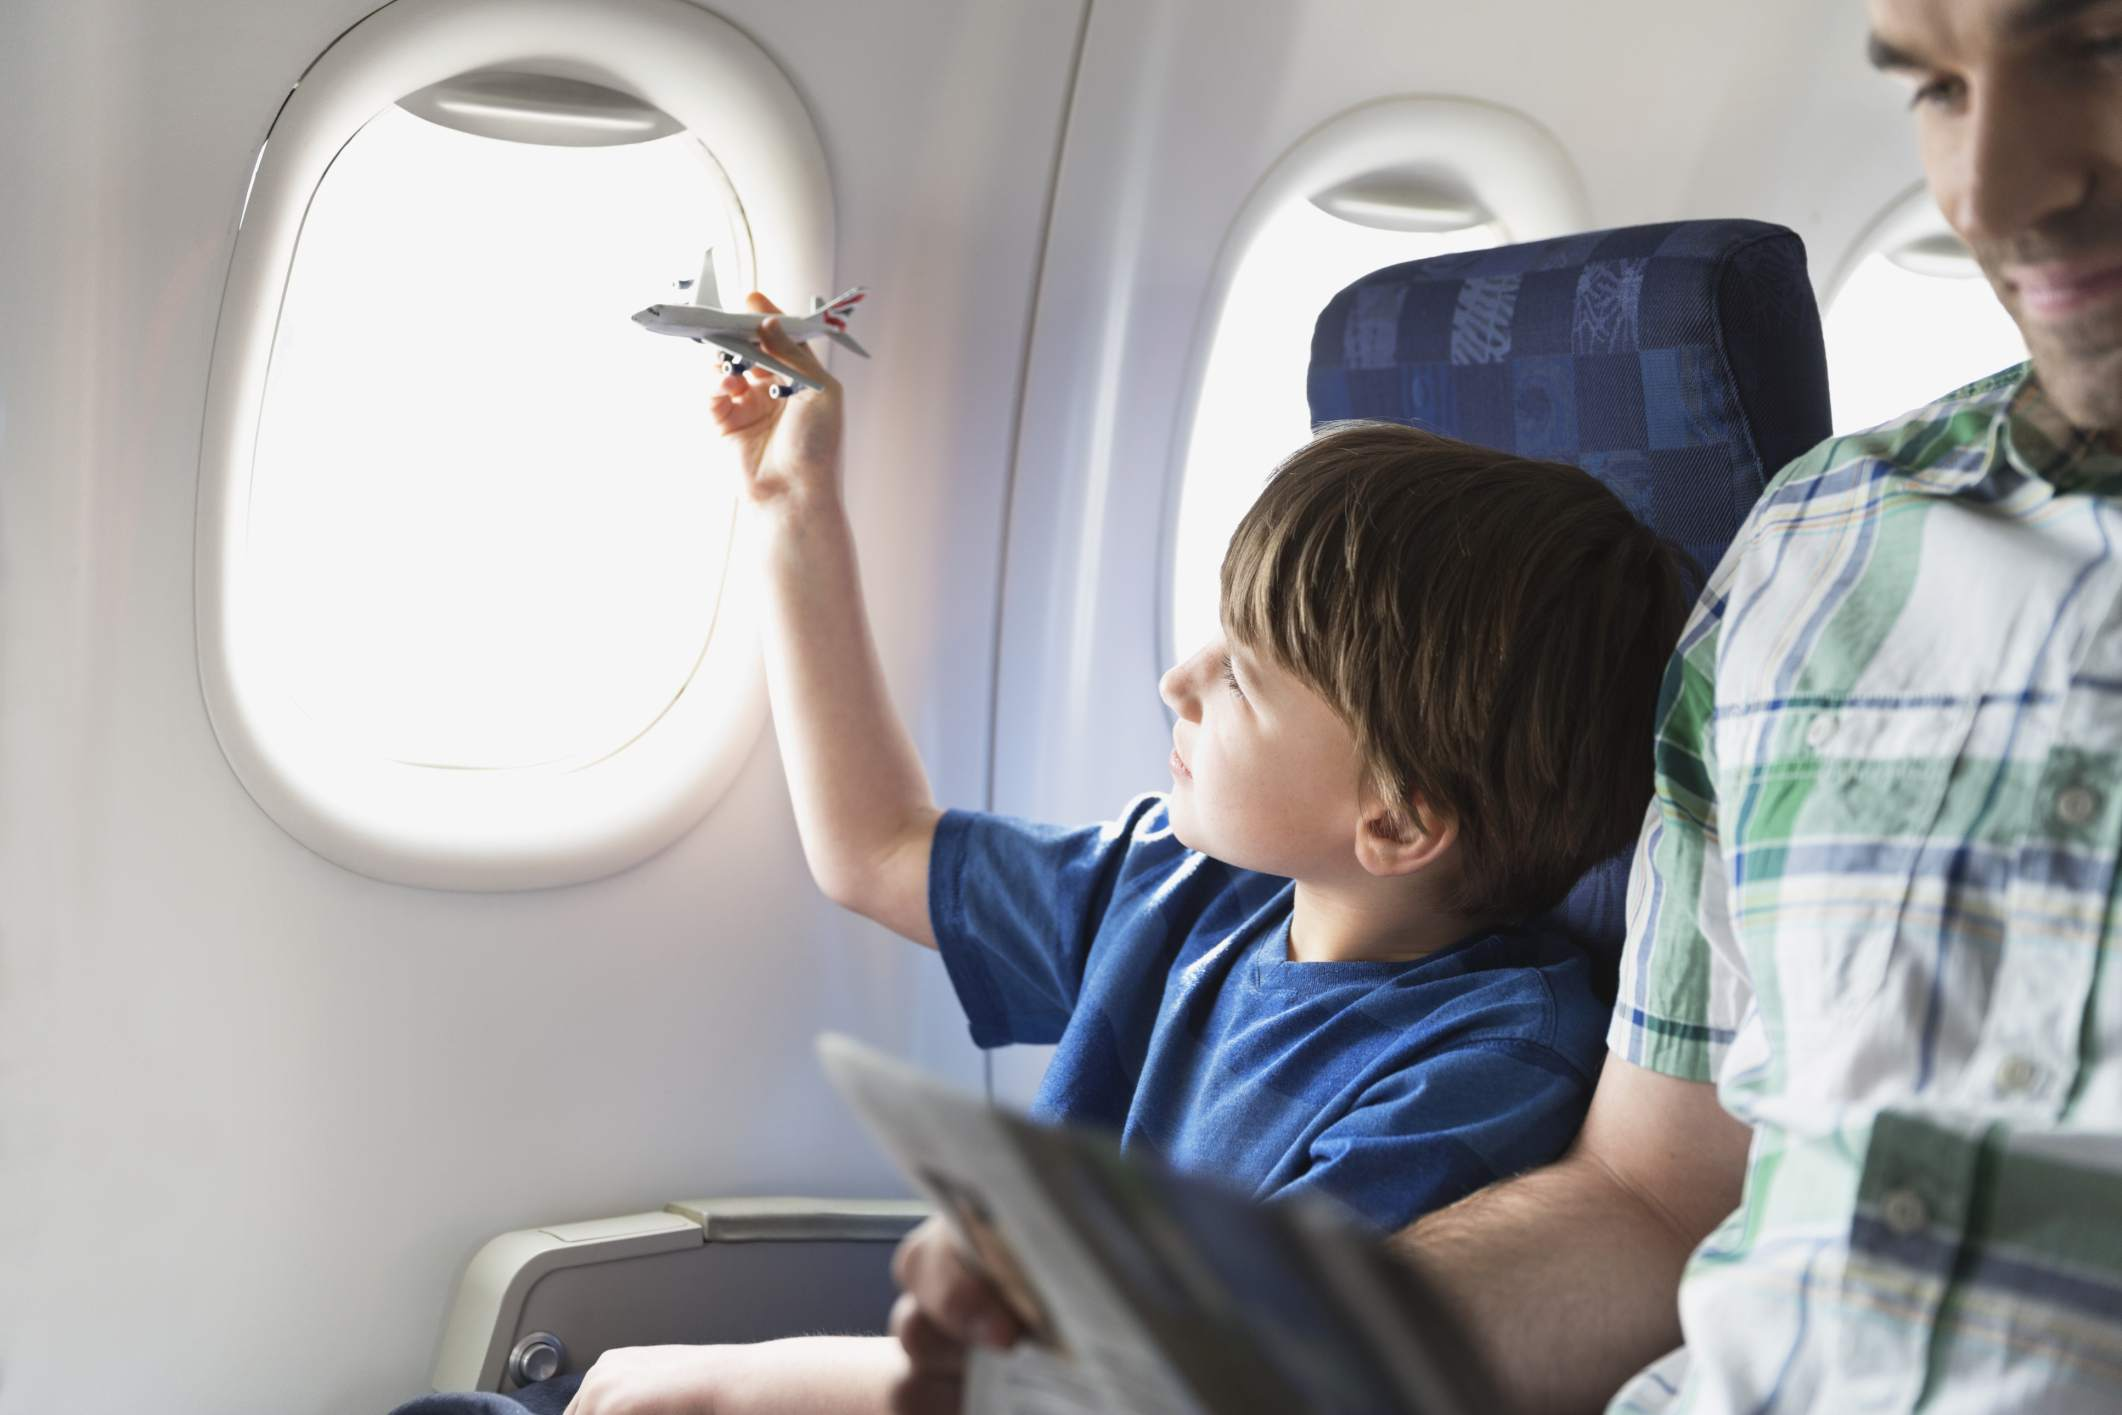 Boy on airplane playing with toy airplane